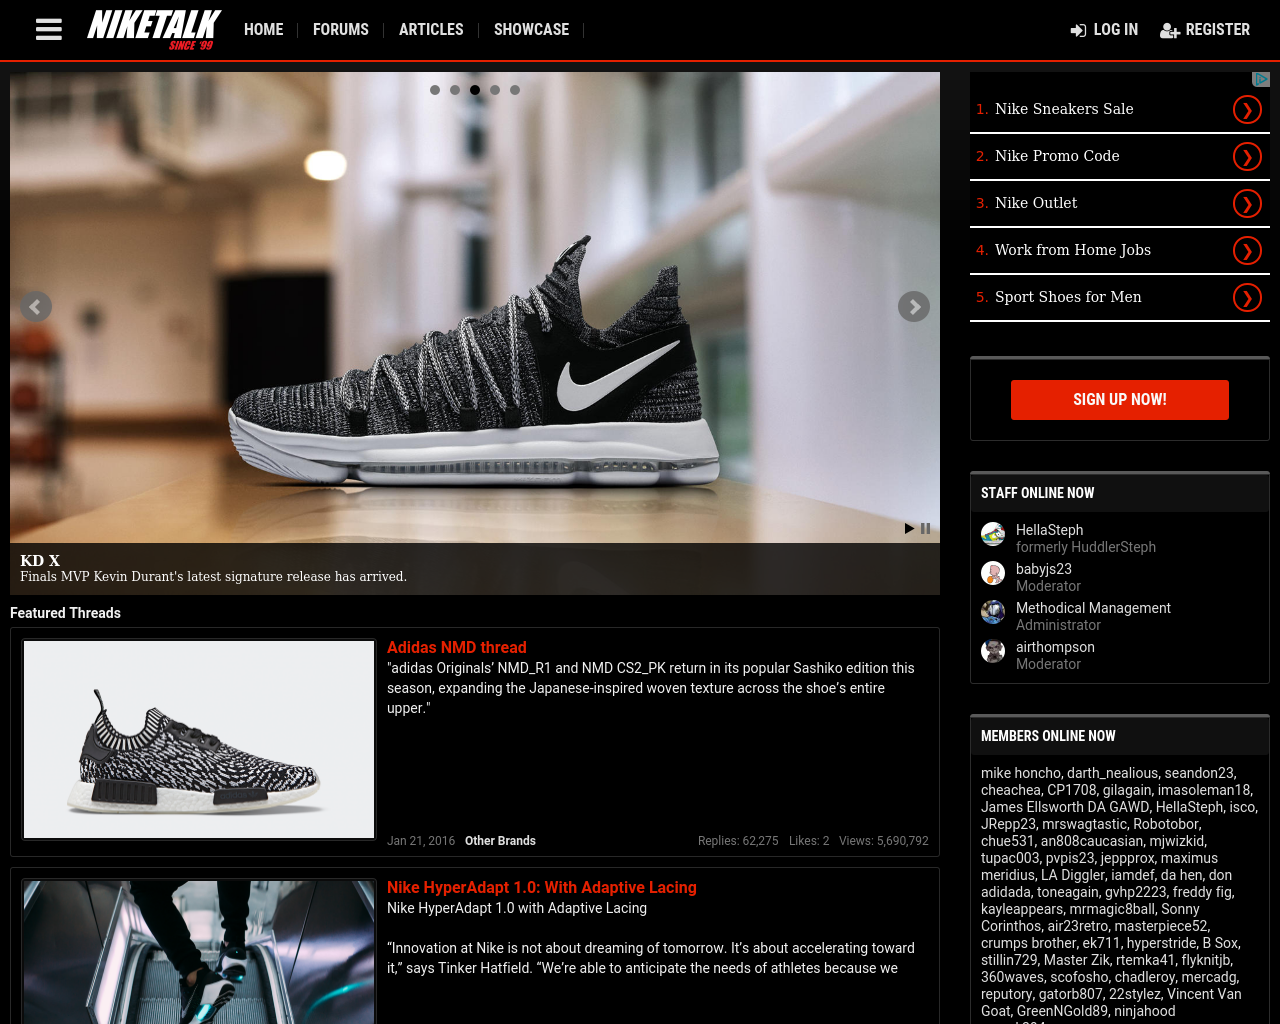 NikeTalk-Advertising-Reviews-Pricing